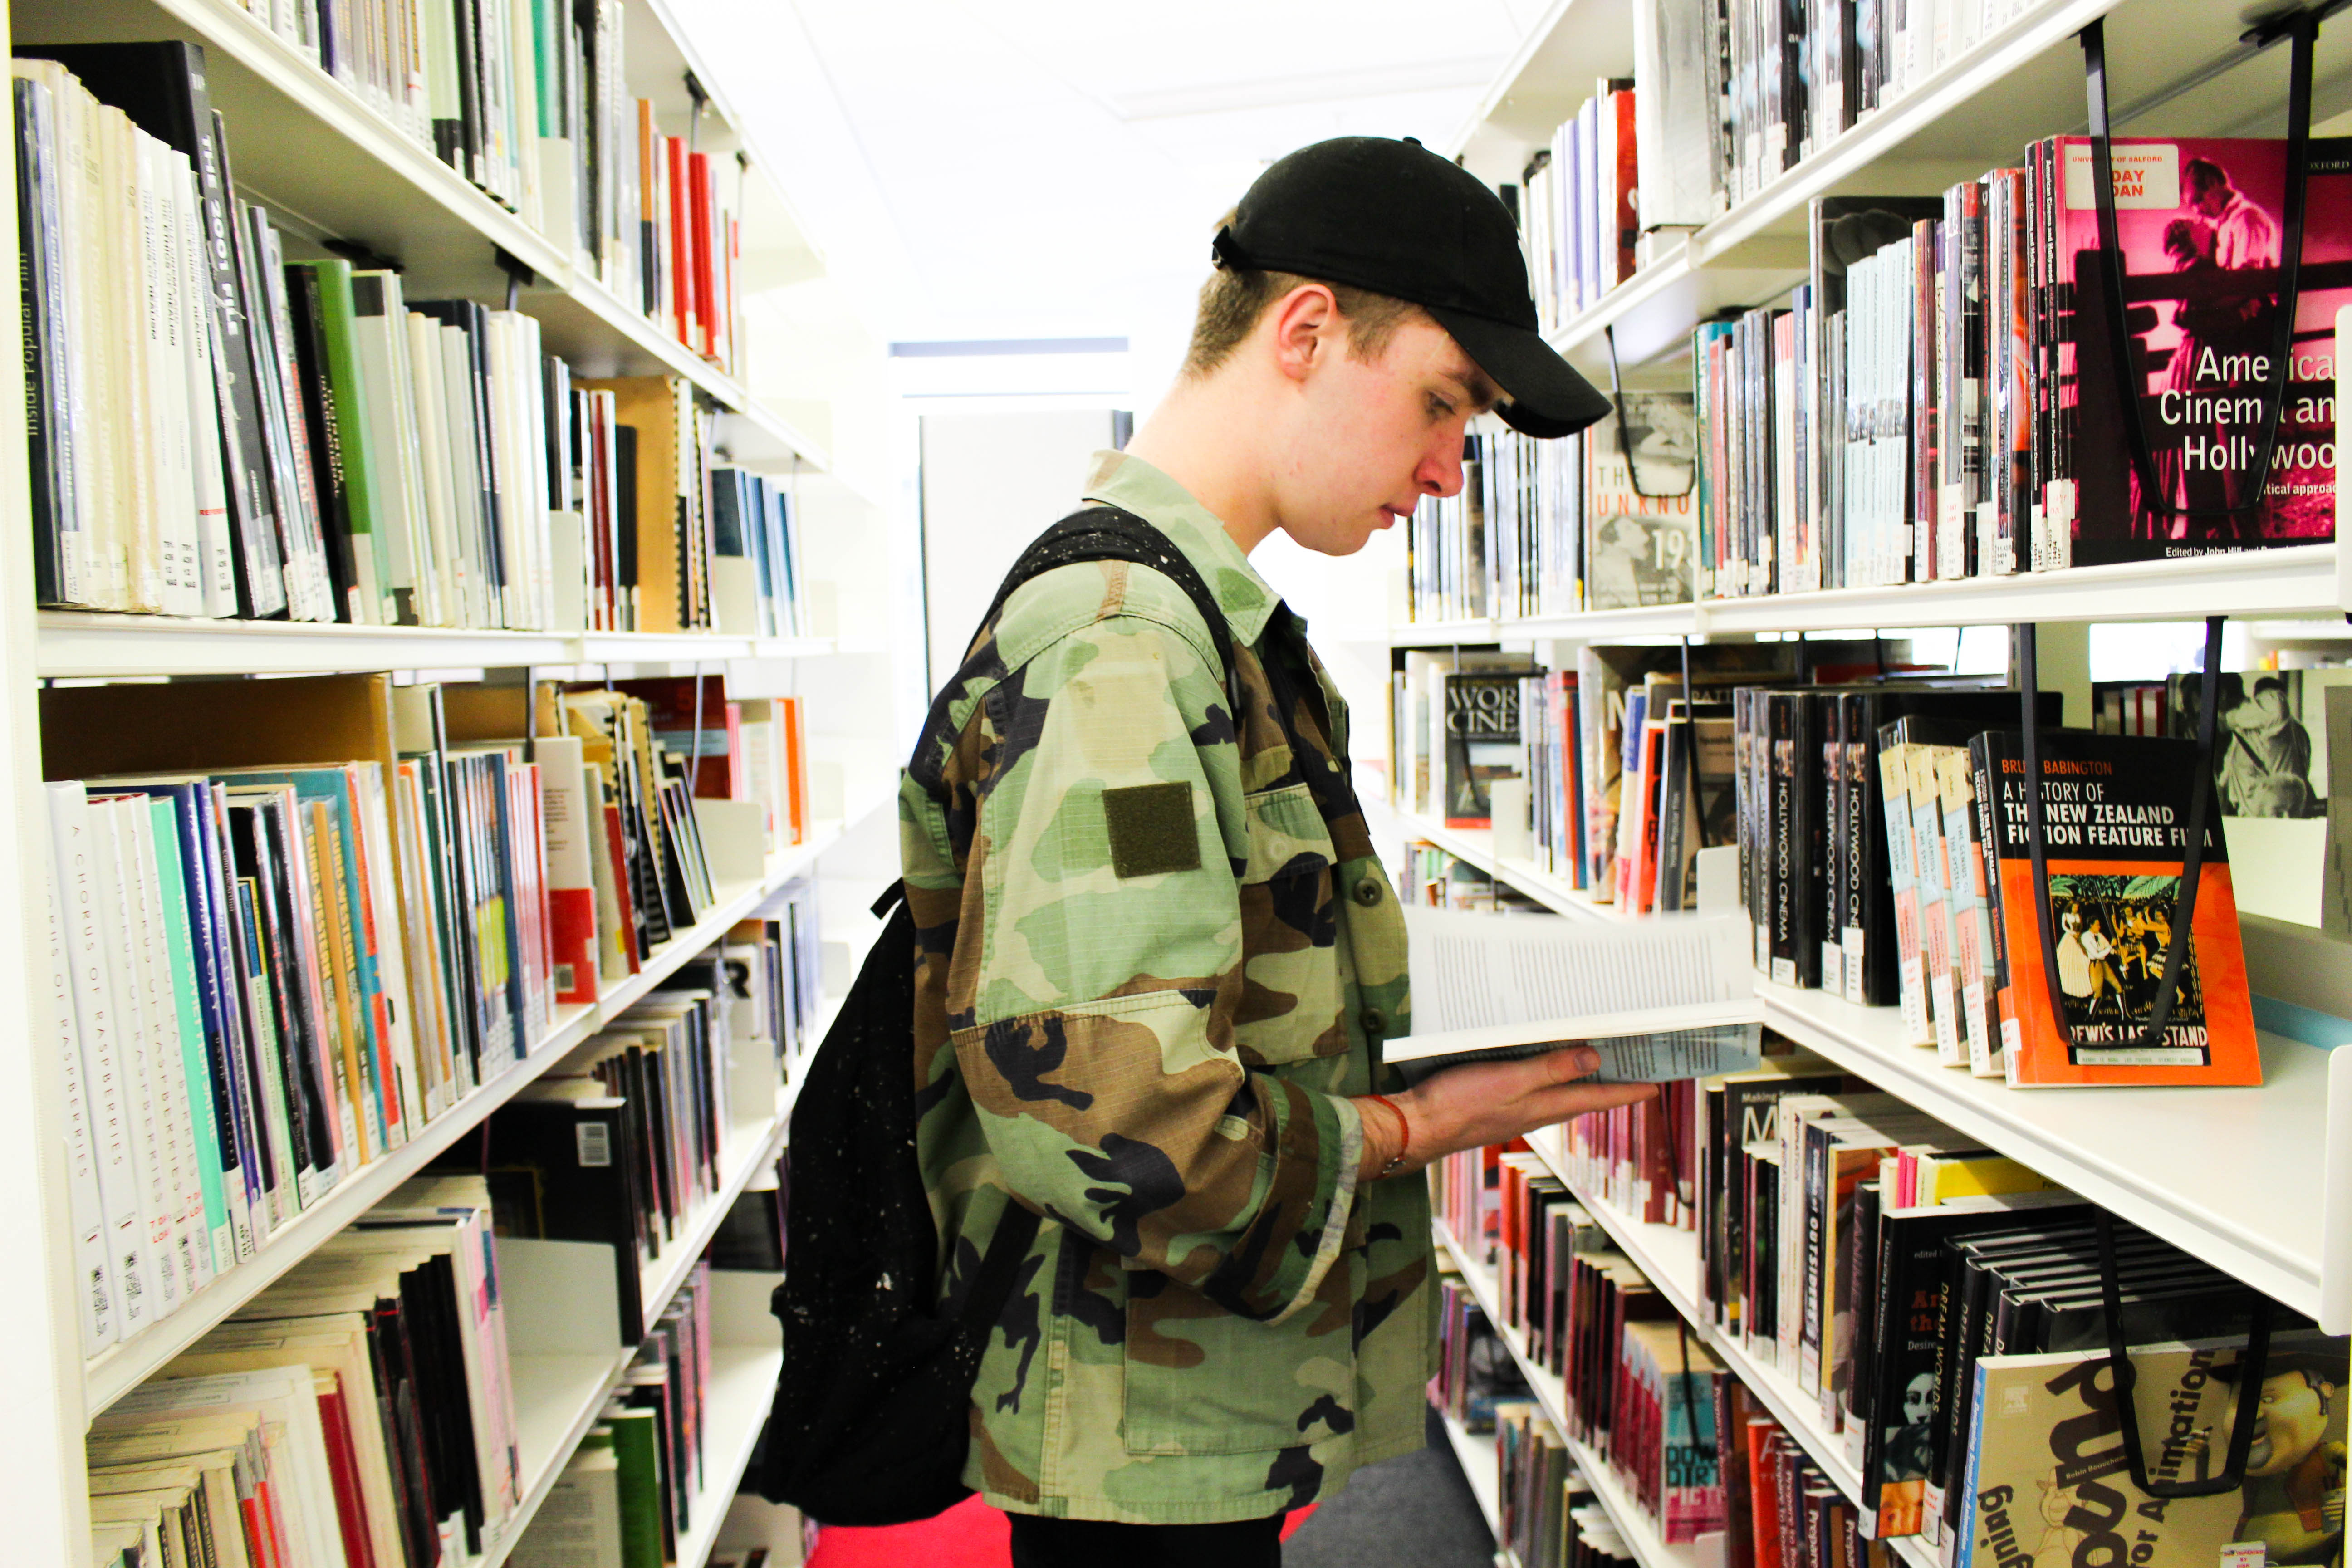 Image: Callum in the Library